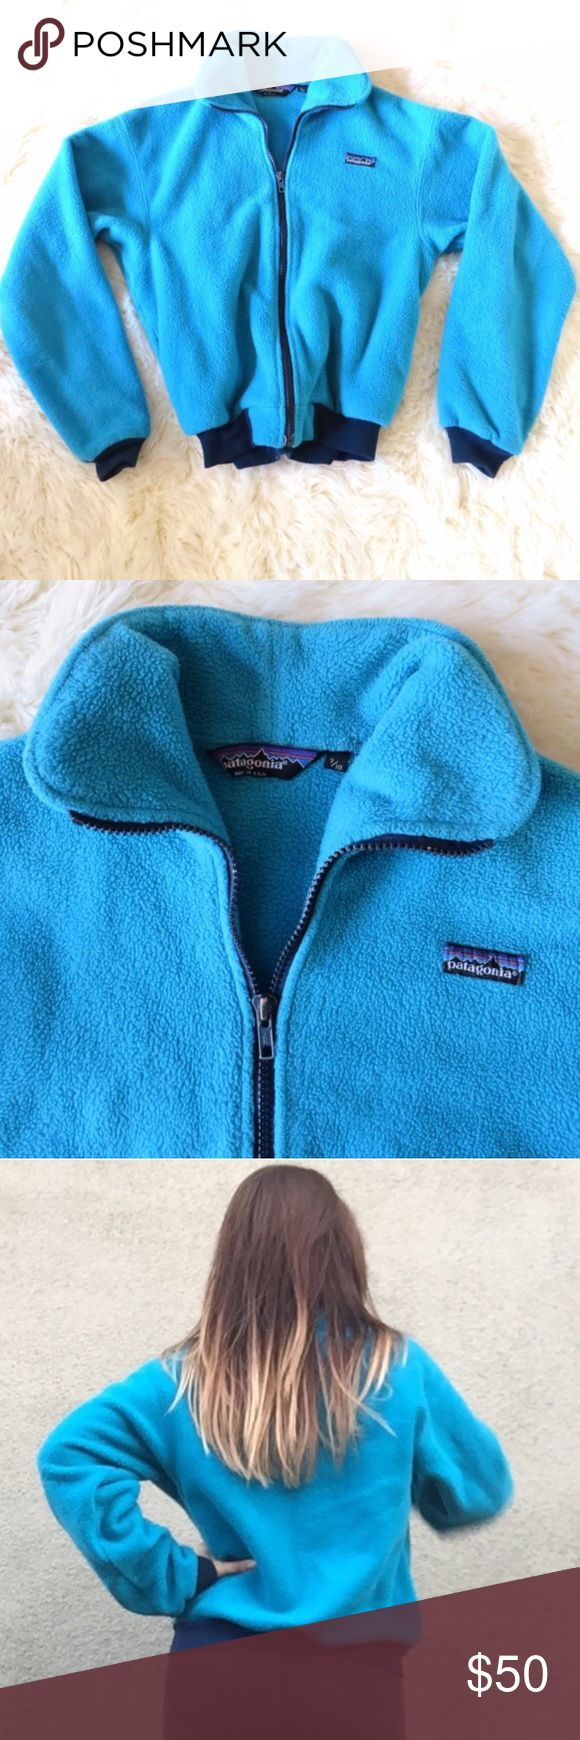 Retro Patagonia Fleece Turquoise Snow Ski Jacket Retro 80s or 90s Patagonia fleece and aqua blue. Full zipper, dark blue elastic cuffs and ham. If you've ever owned a Patagonia jacket you know how warm and insulated they are! Obsessed with mine and selling the ones I don't wear as much. This Best fits an xs-small in women's. Patagonia Jackets & Coats